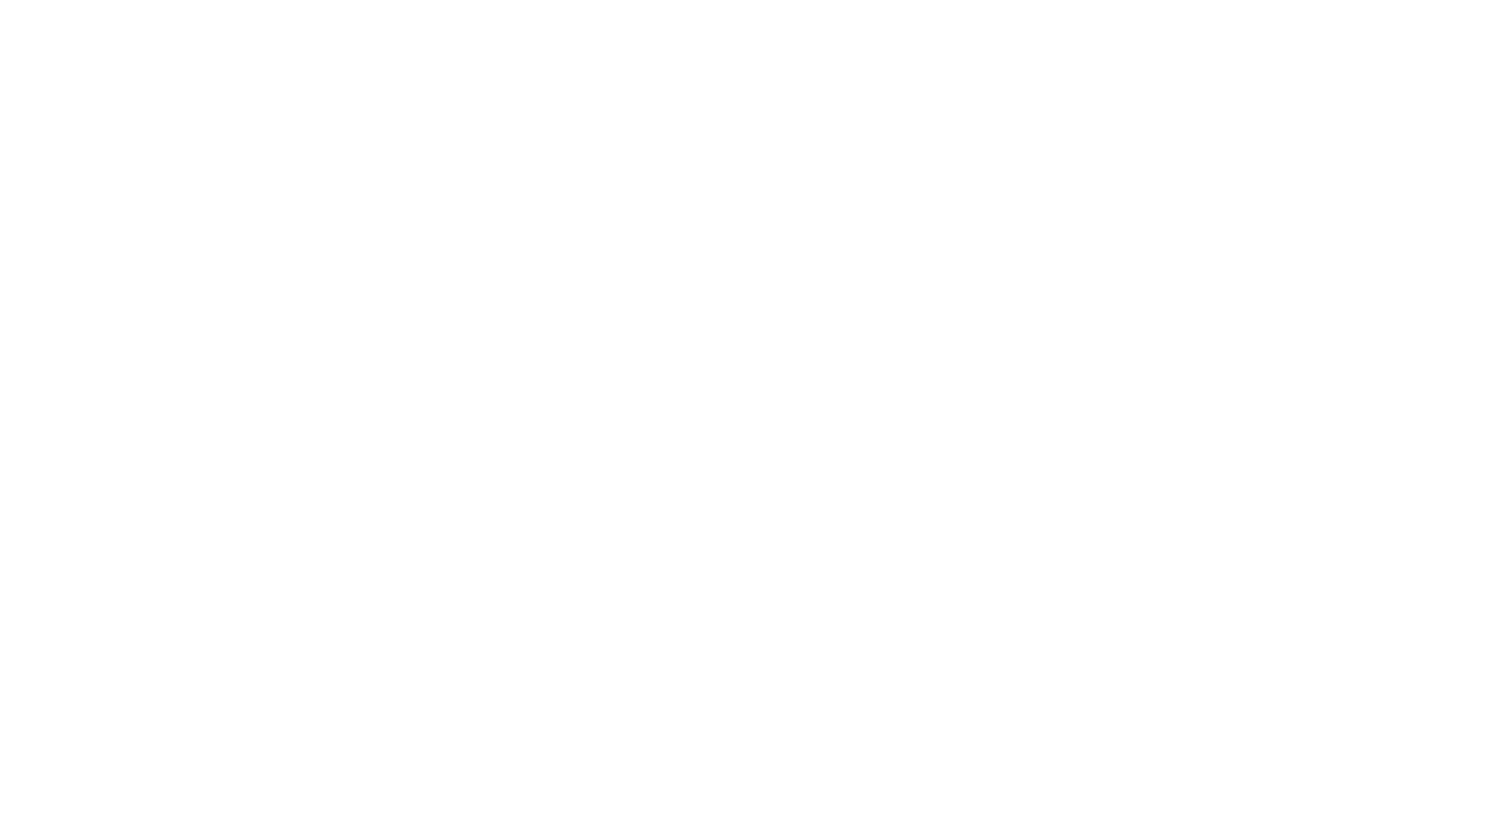 Kingdom Partners Global